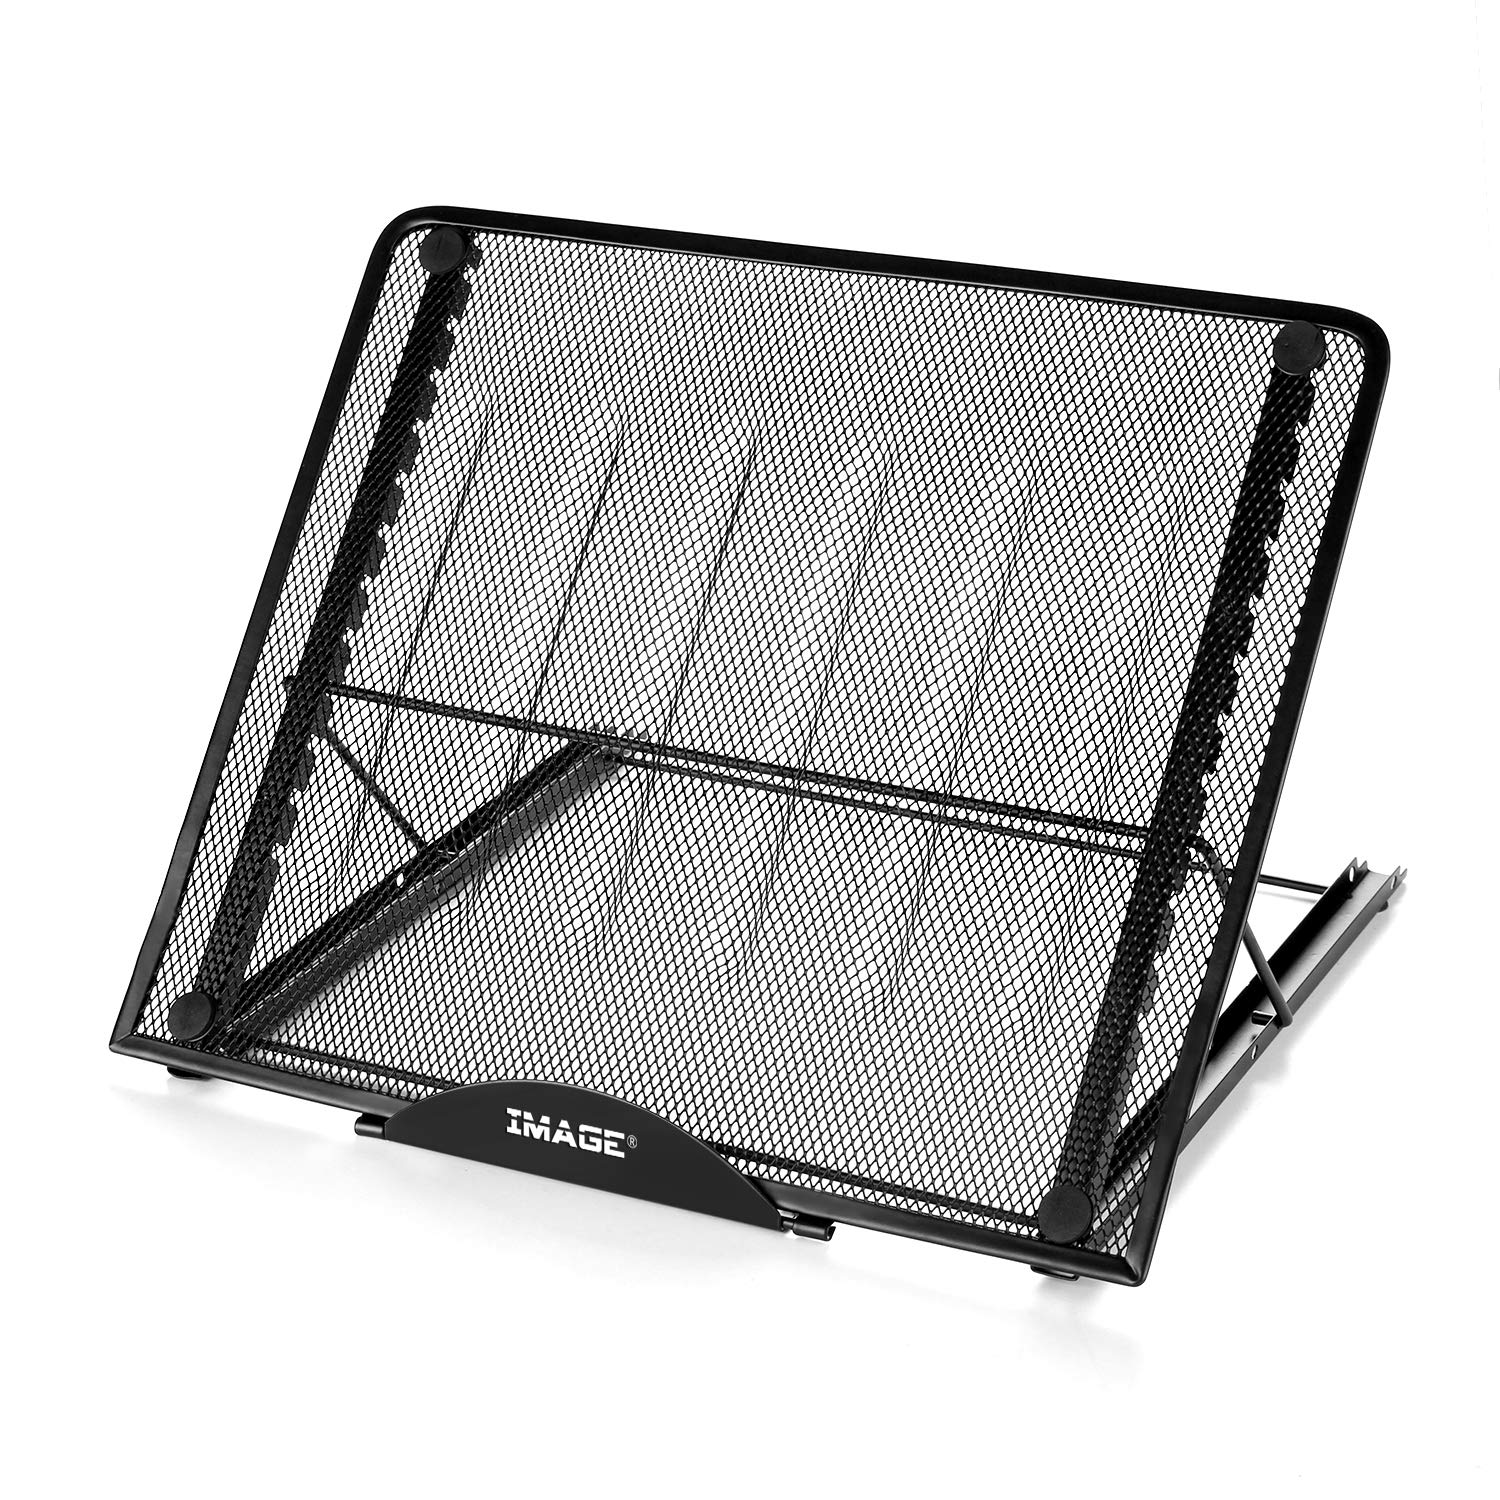 Large Version Stand Ventilated Adjustable Light Box Laptop Pad Stand,IMAGE Multifunction(12 Angles) Skidding Prevented Tracing Holder for AGPtek/Huion A3 A4 LED Tracing Light Pad & Diamond Painting by IMAGE